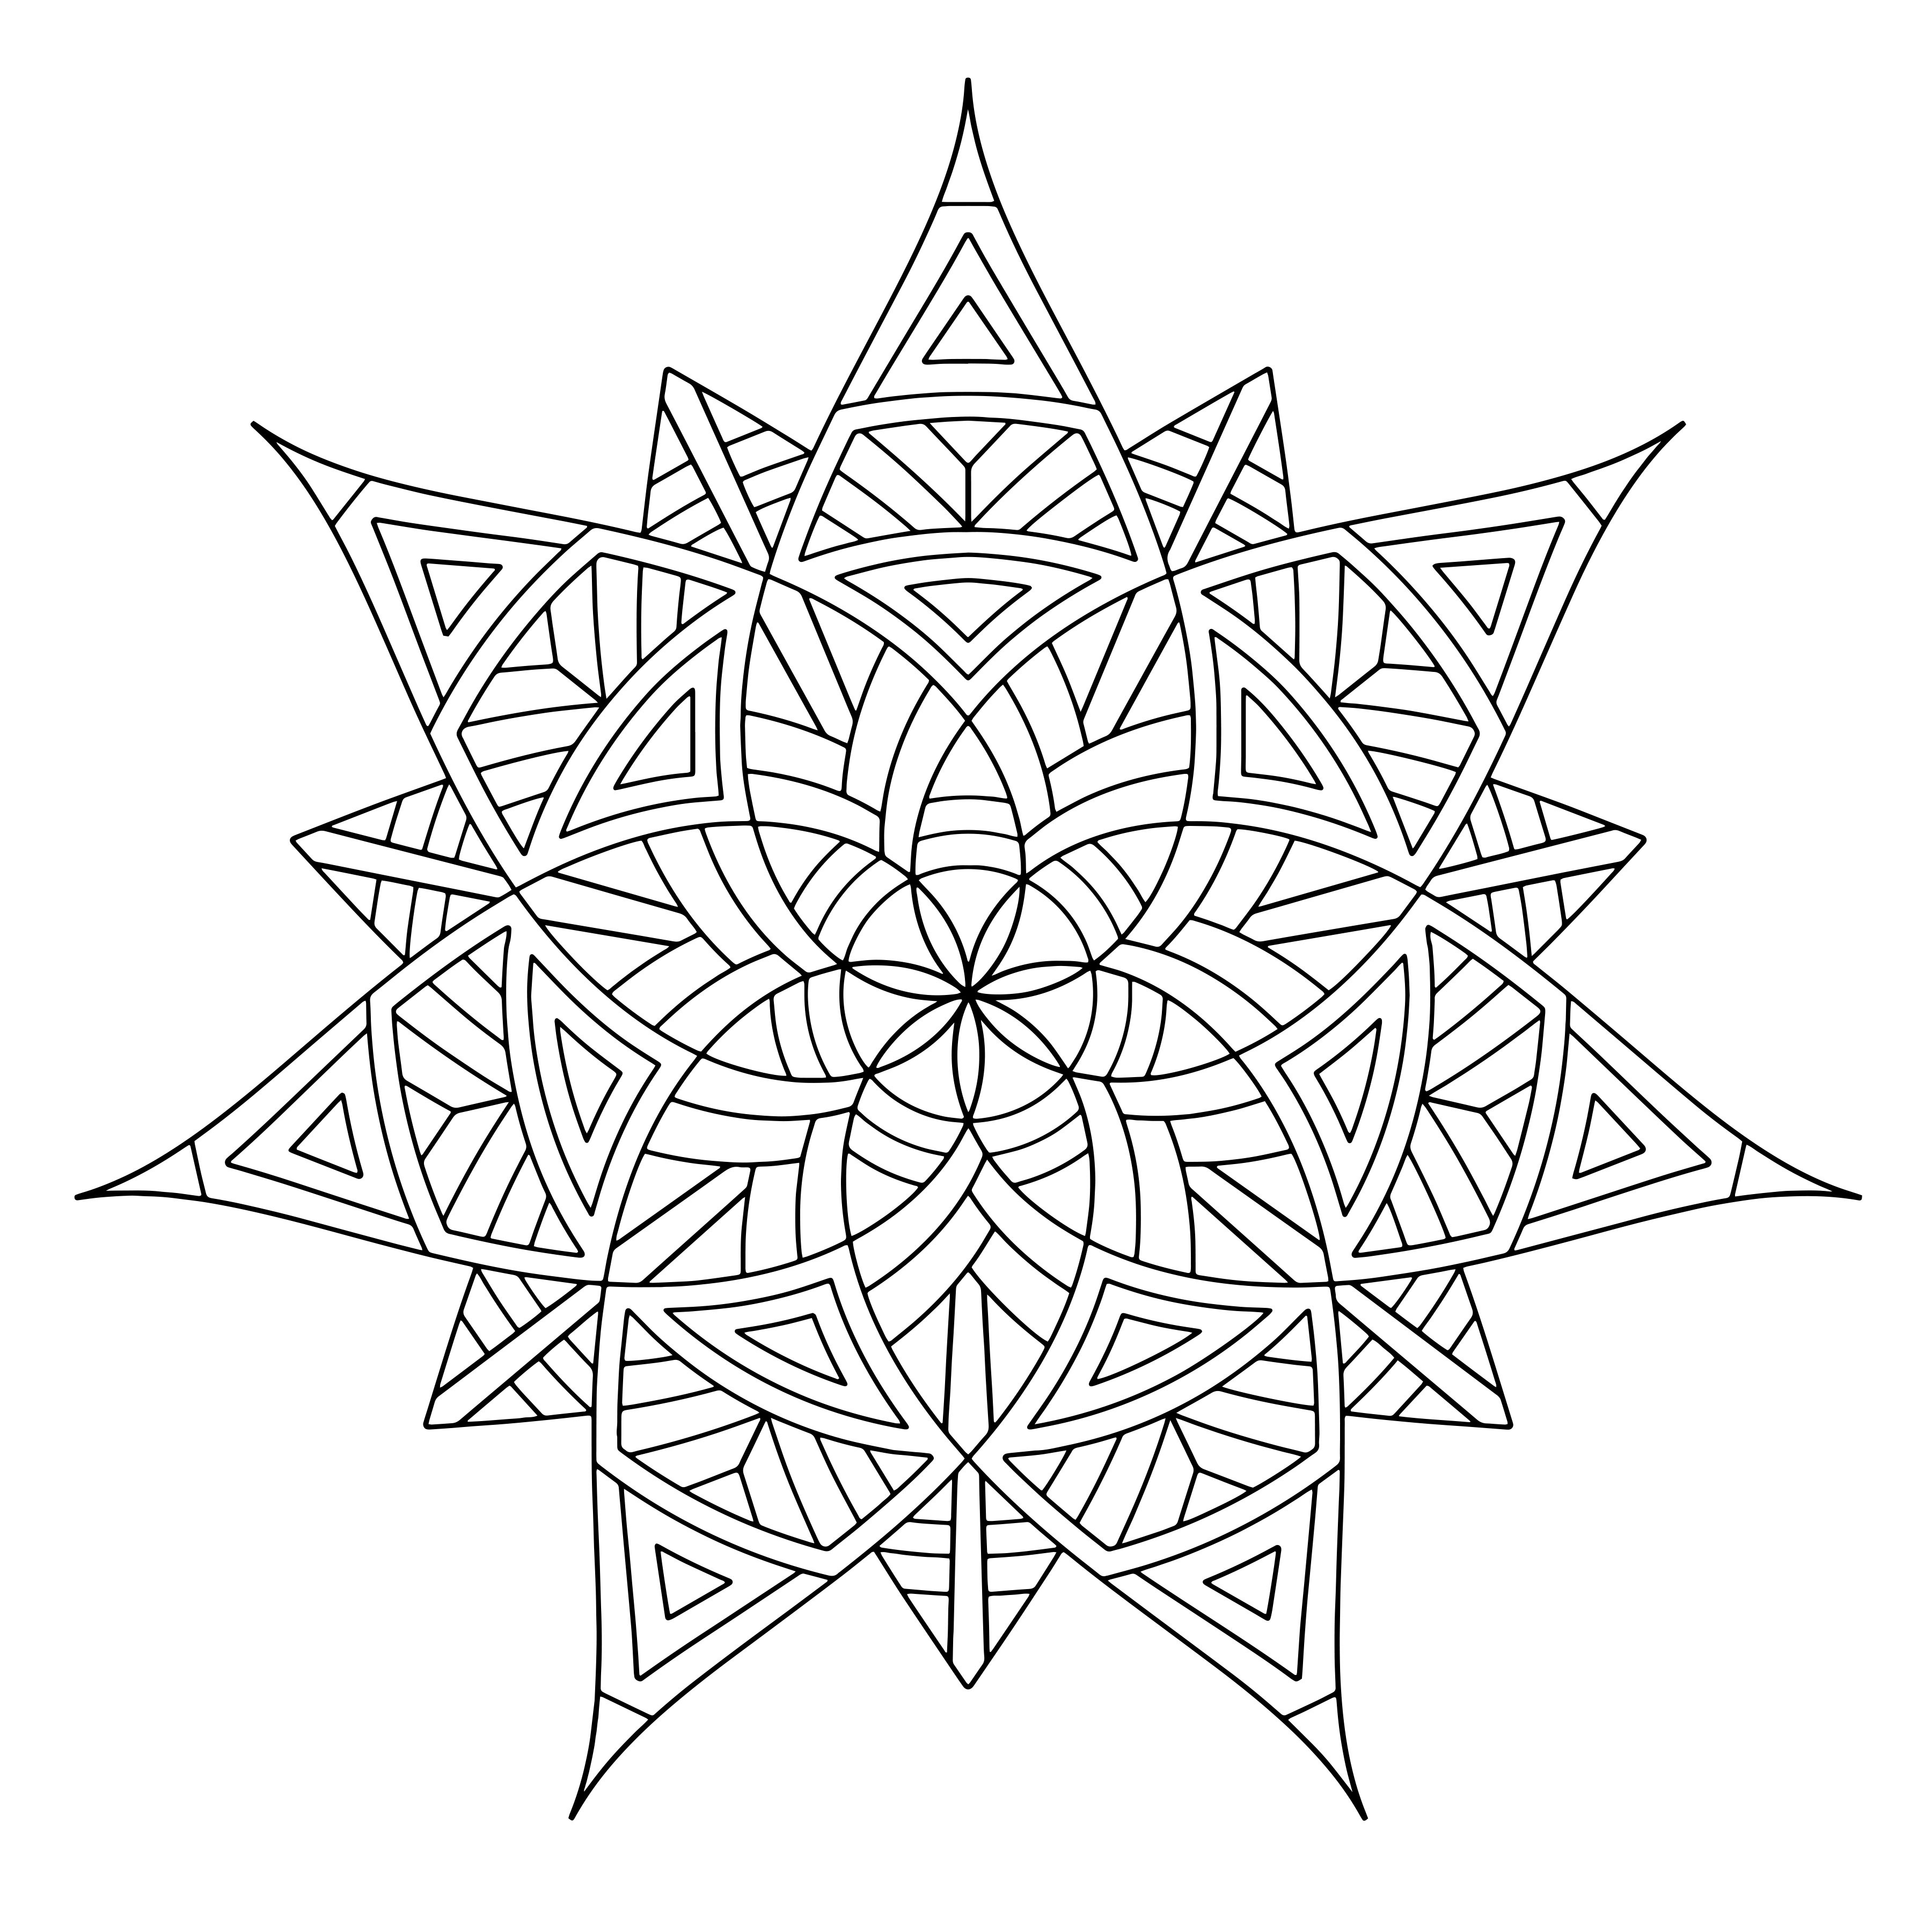 printable designs to color free printable geometric coloring pages for kids designs printable to color